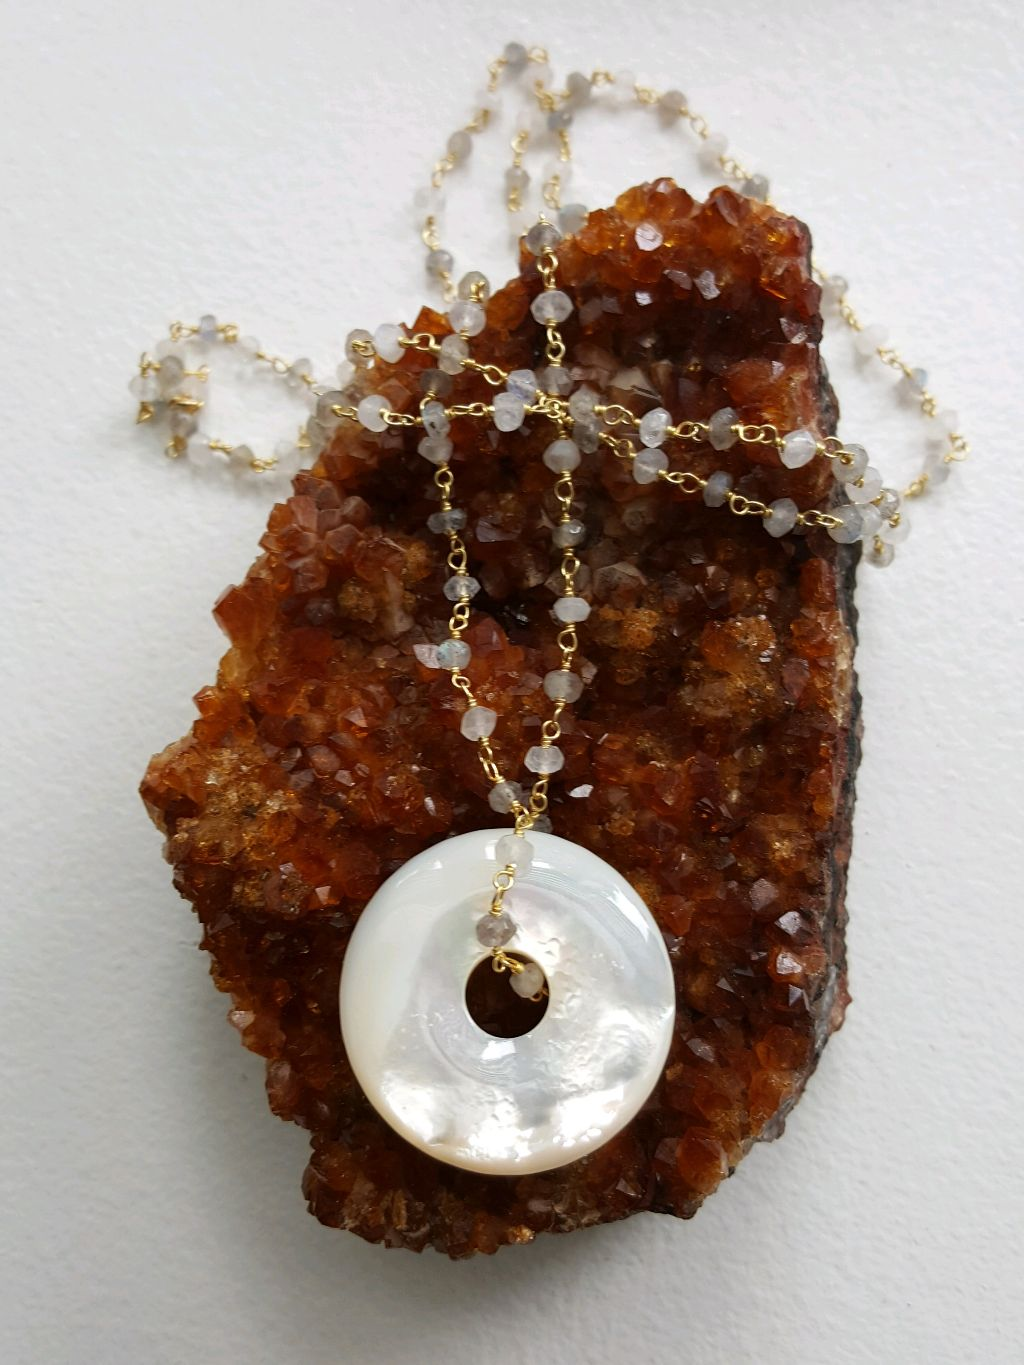 Stunning Mother of Pearl Donut, on labradorite, moonstone rosary chain